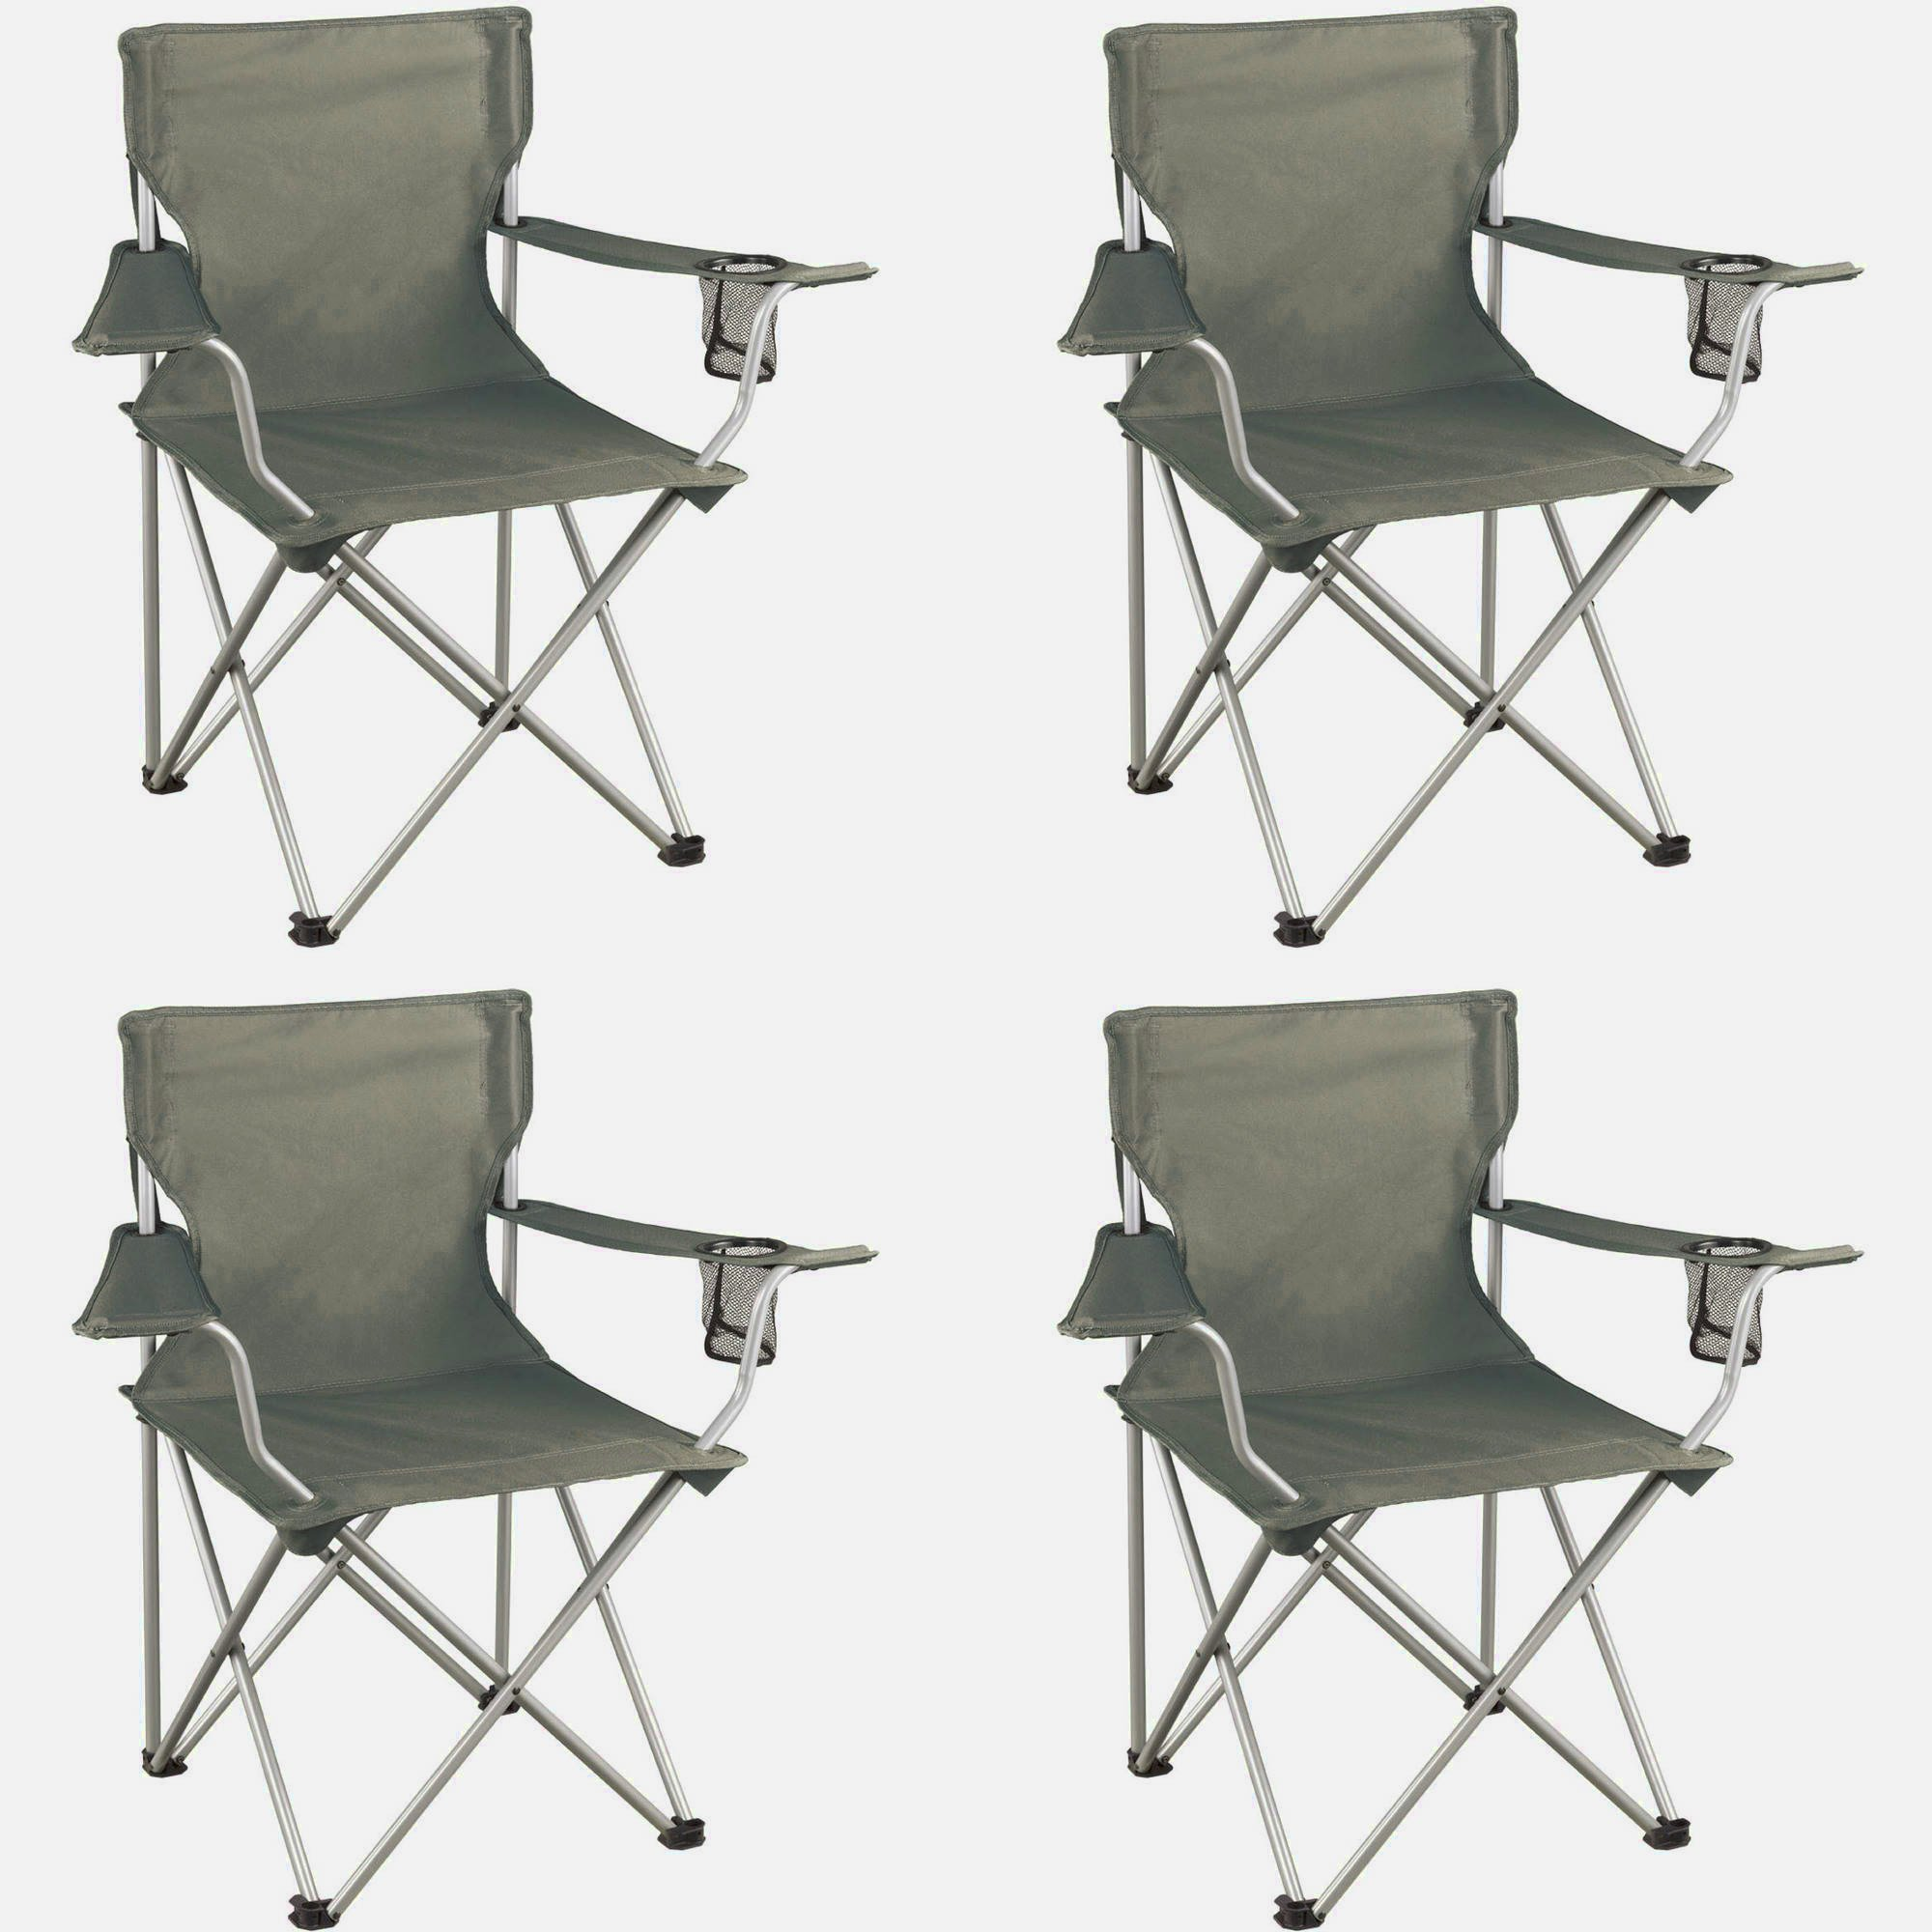 Huge Comfy Chair, Four Pieces, Grey Color, Steel Frame, Durable And High Resistant Construction, Lightweight, An Attractive And Modern Design, Portable, Foldable, Easy Setup, Low Maintenance & E-Book.